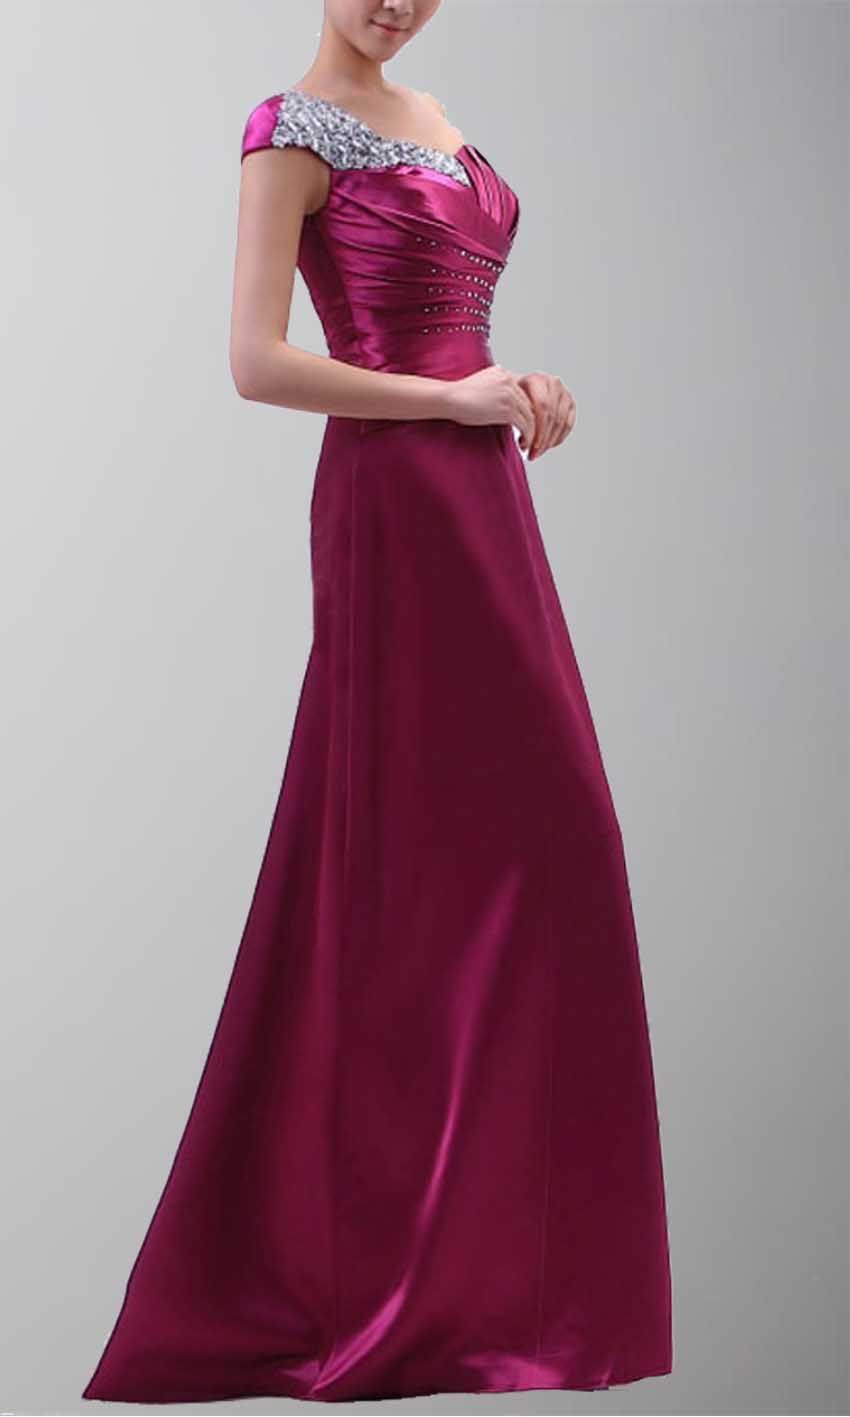 One Shoulder Beaded Purple Long Satin Evening Dress KSP103 [KSP103] - £99.00 : Cheap Prom Dresses Uk, Bridesmaid Dresses, 2014 Prom & Evening Dresses, Look for cheap elegant prom dresses 2014, cocktail gowns, or dresses for special occasions? kissprom.co.uk offers various bridesmaid dresses, evening dress, free shipping to UK etc.